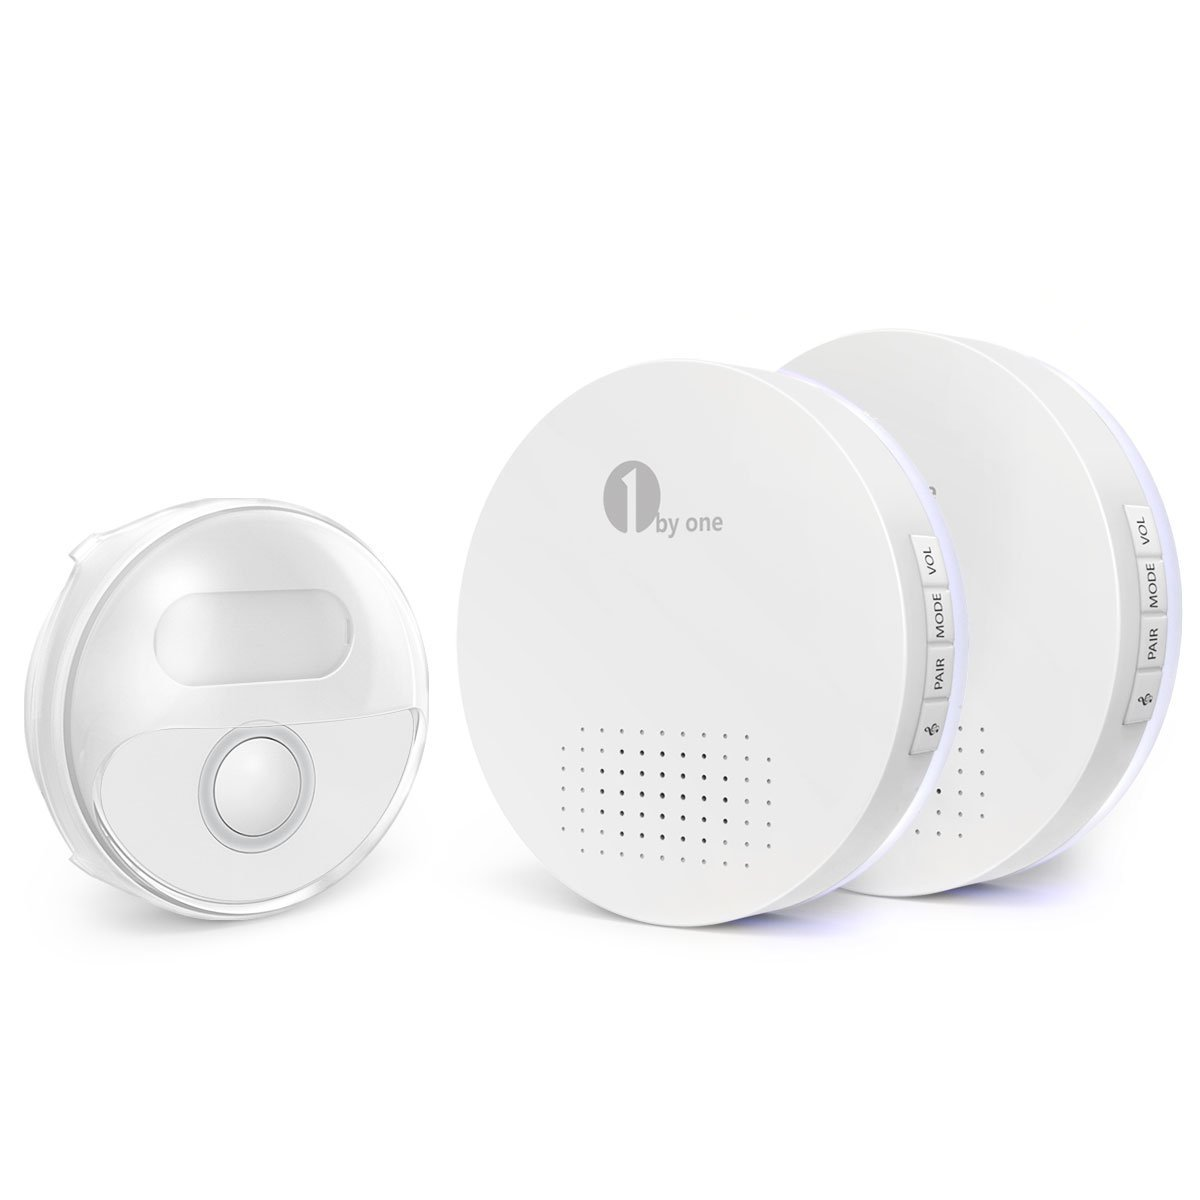 1byone Wireless Doorbell, Waterproof Door Chime Kit Operating at Over 500 Feet with LED Flash Battery-operated 1 Receiver and 1 Push Button , 36 Chimes, 6 Levels Volume, White 102US-0002